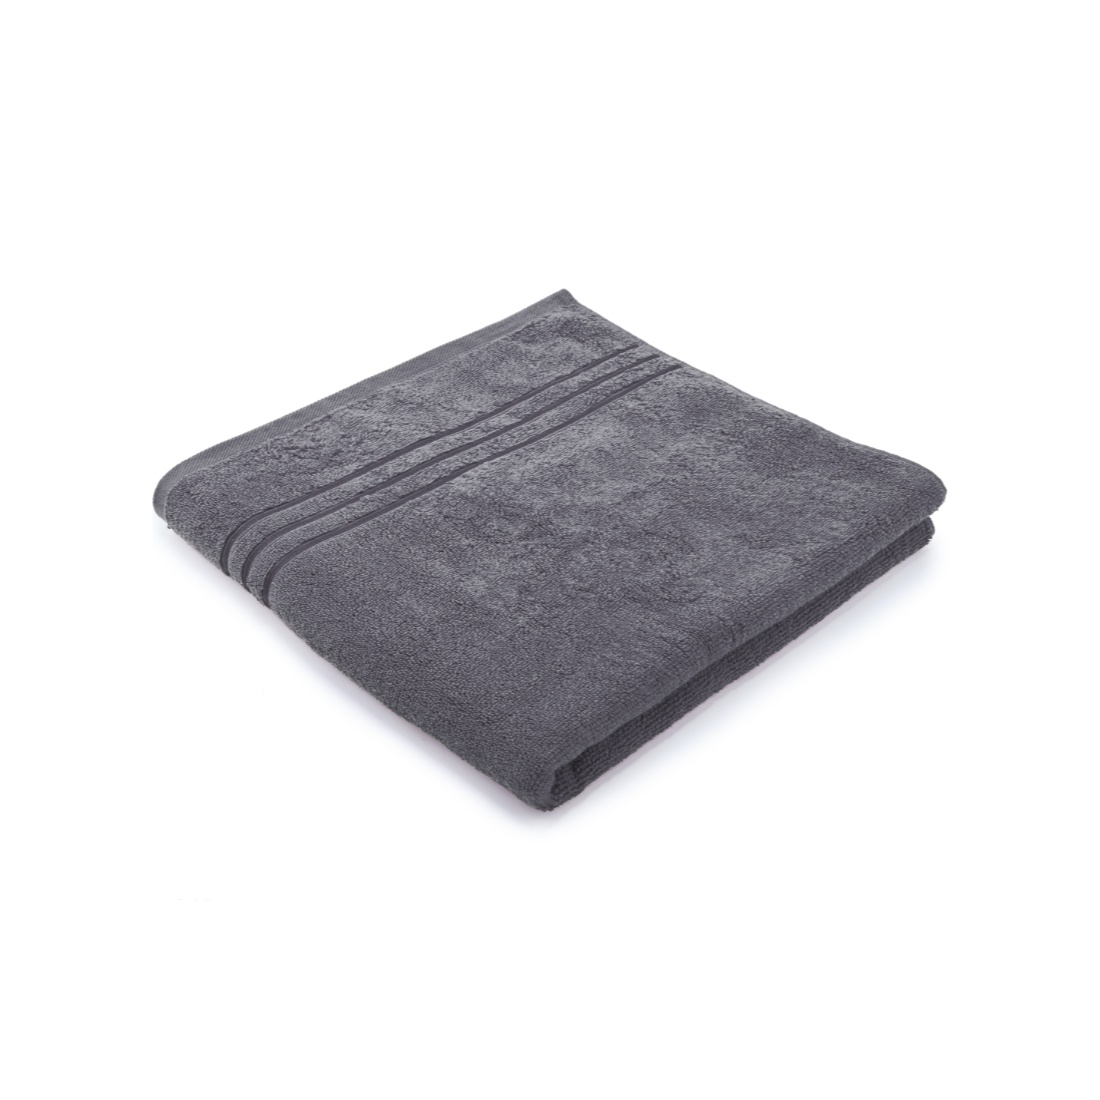 Bath Towel 70X140 Nora Grey Combed Cotton Bath Towels in Grey Colour by Living Essence